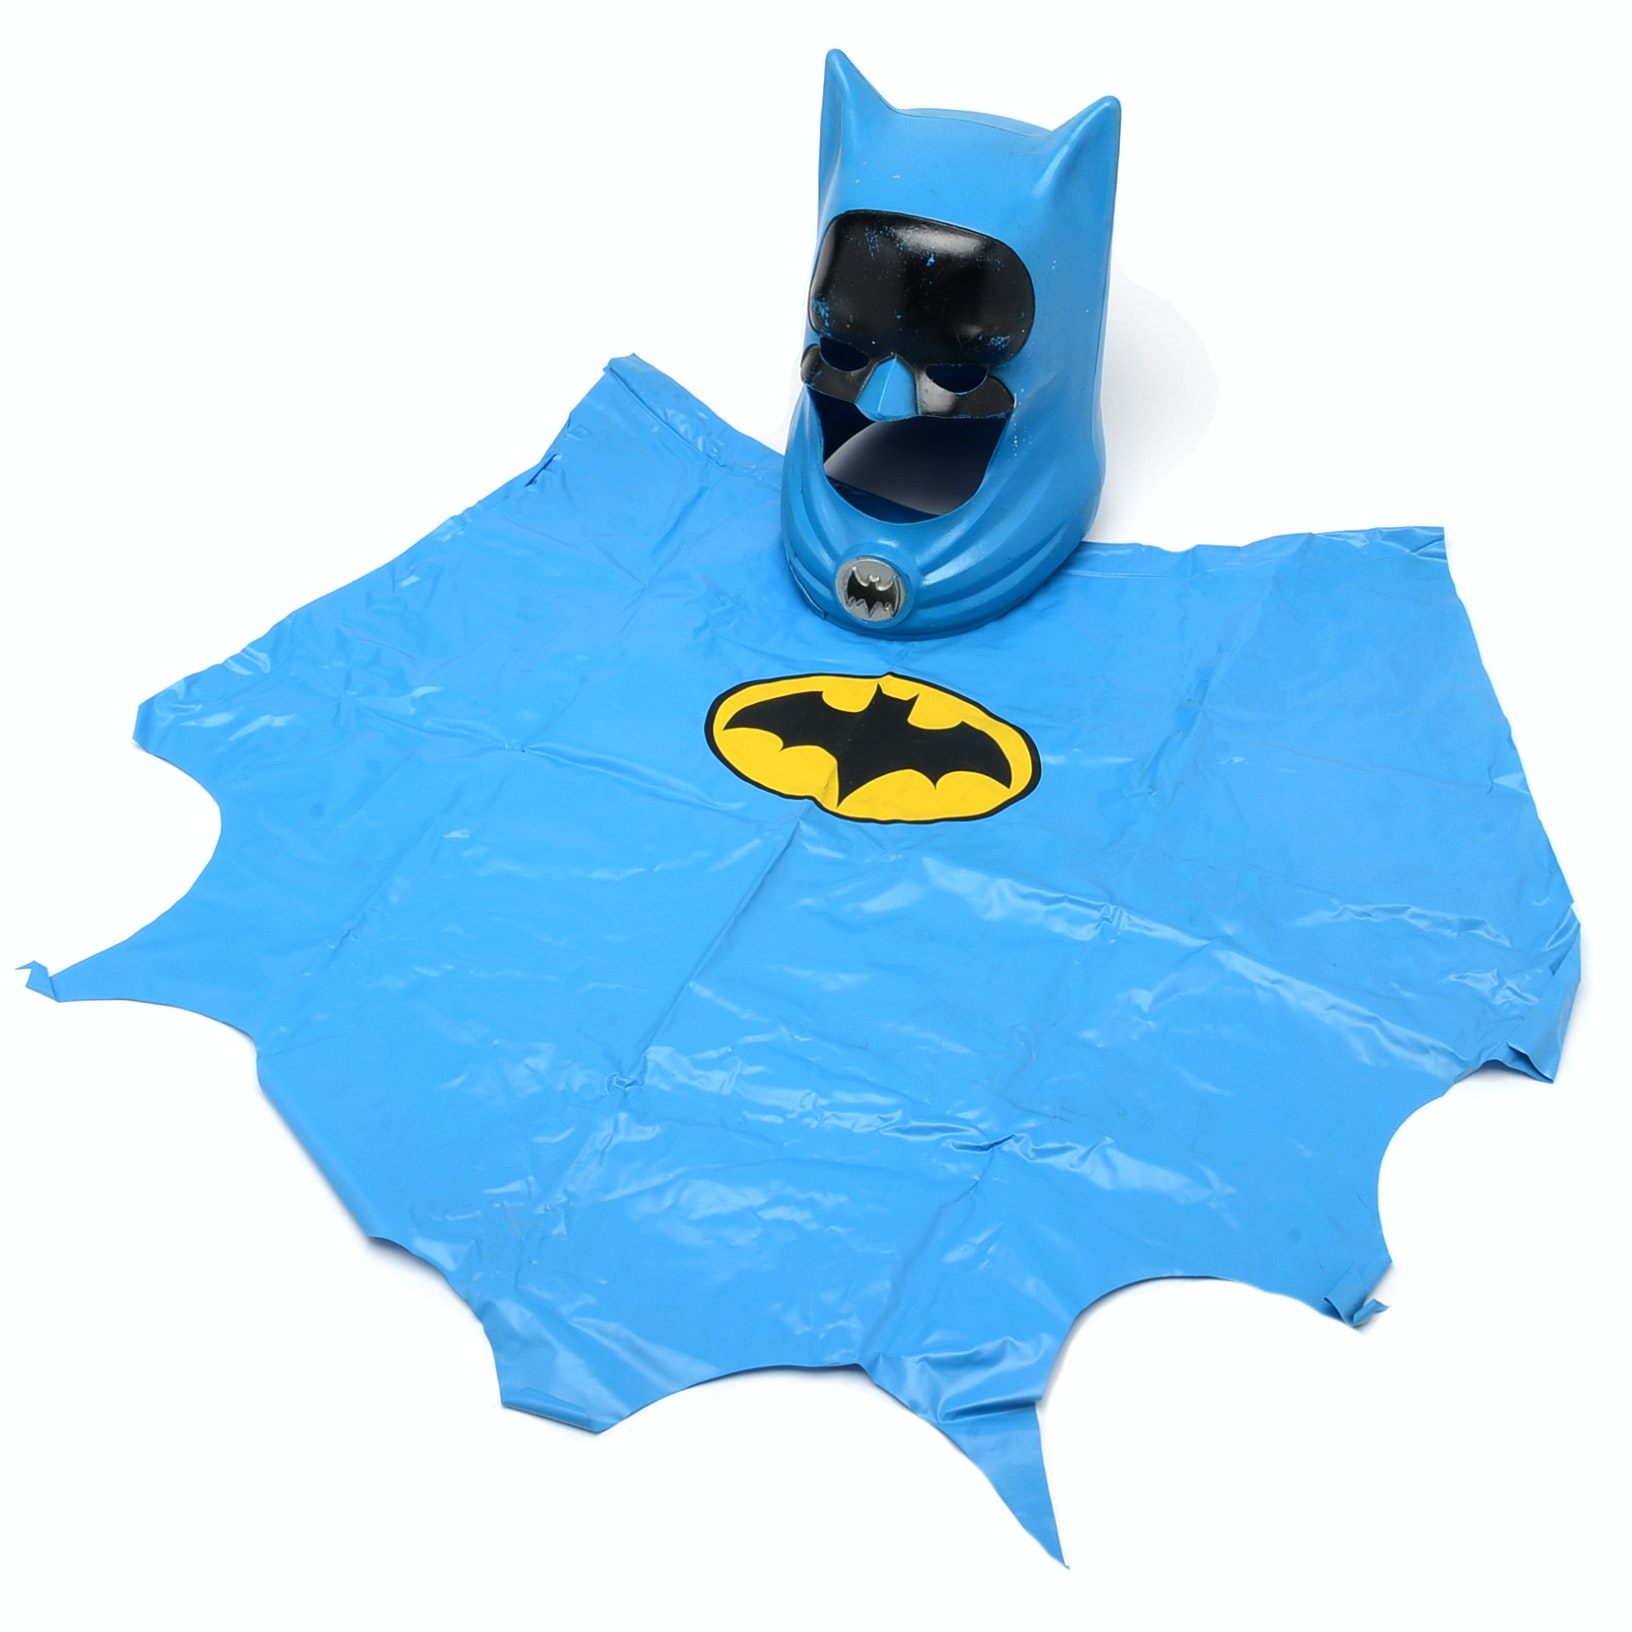 1966 Ideal Toys Batman Cowl Mask and Cape